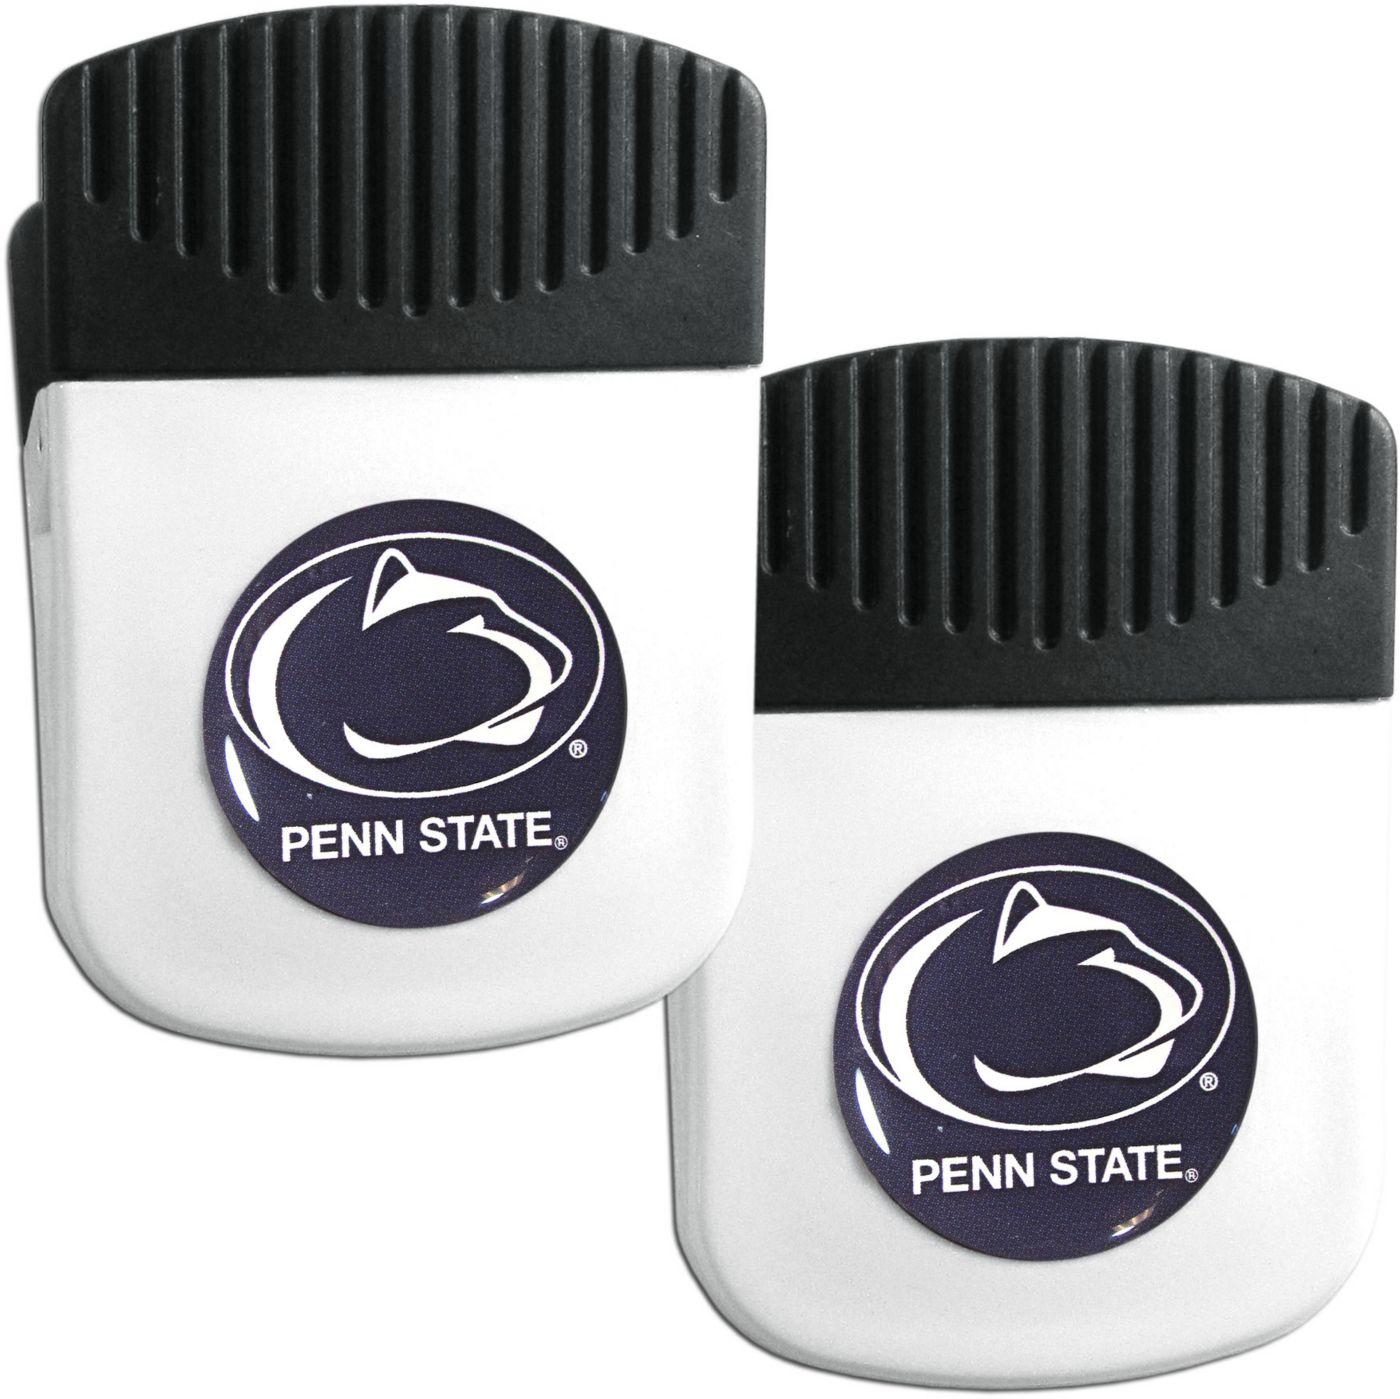 Penn State Nittany Lions Chip Clip Magnet and Bottle Opener 2 Pack